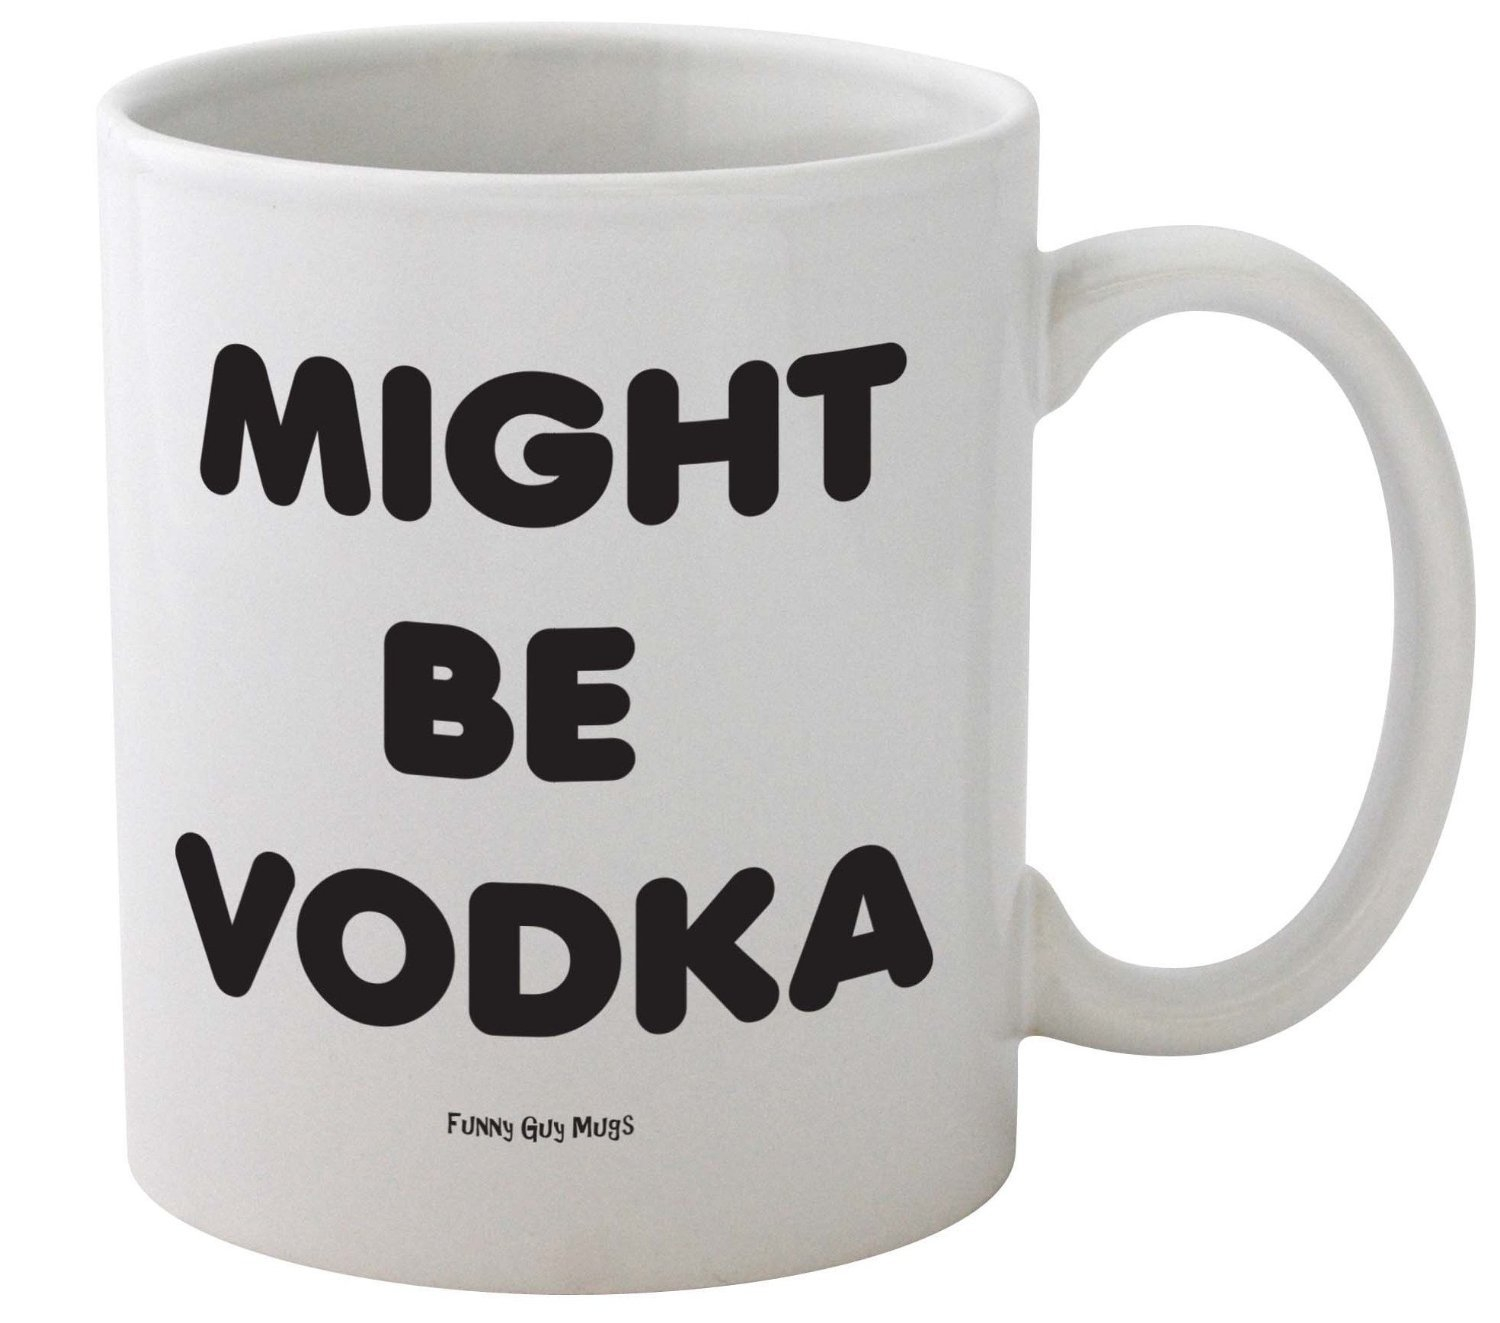 amazon com funny guy mugs might be vodka ceramic coffee mug